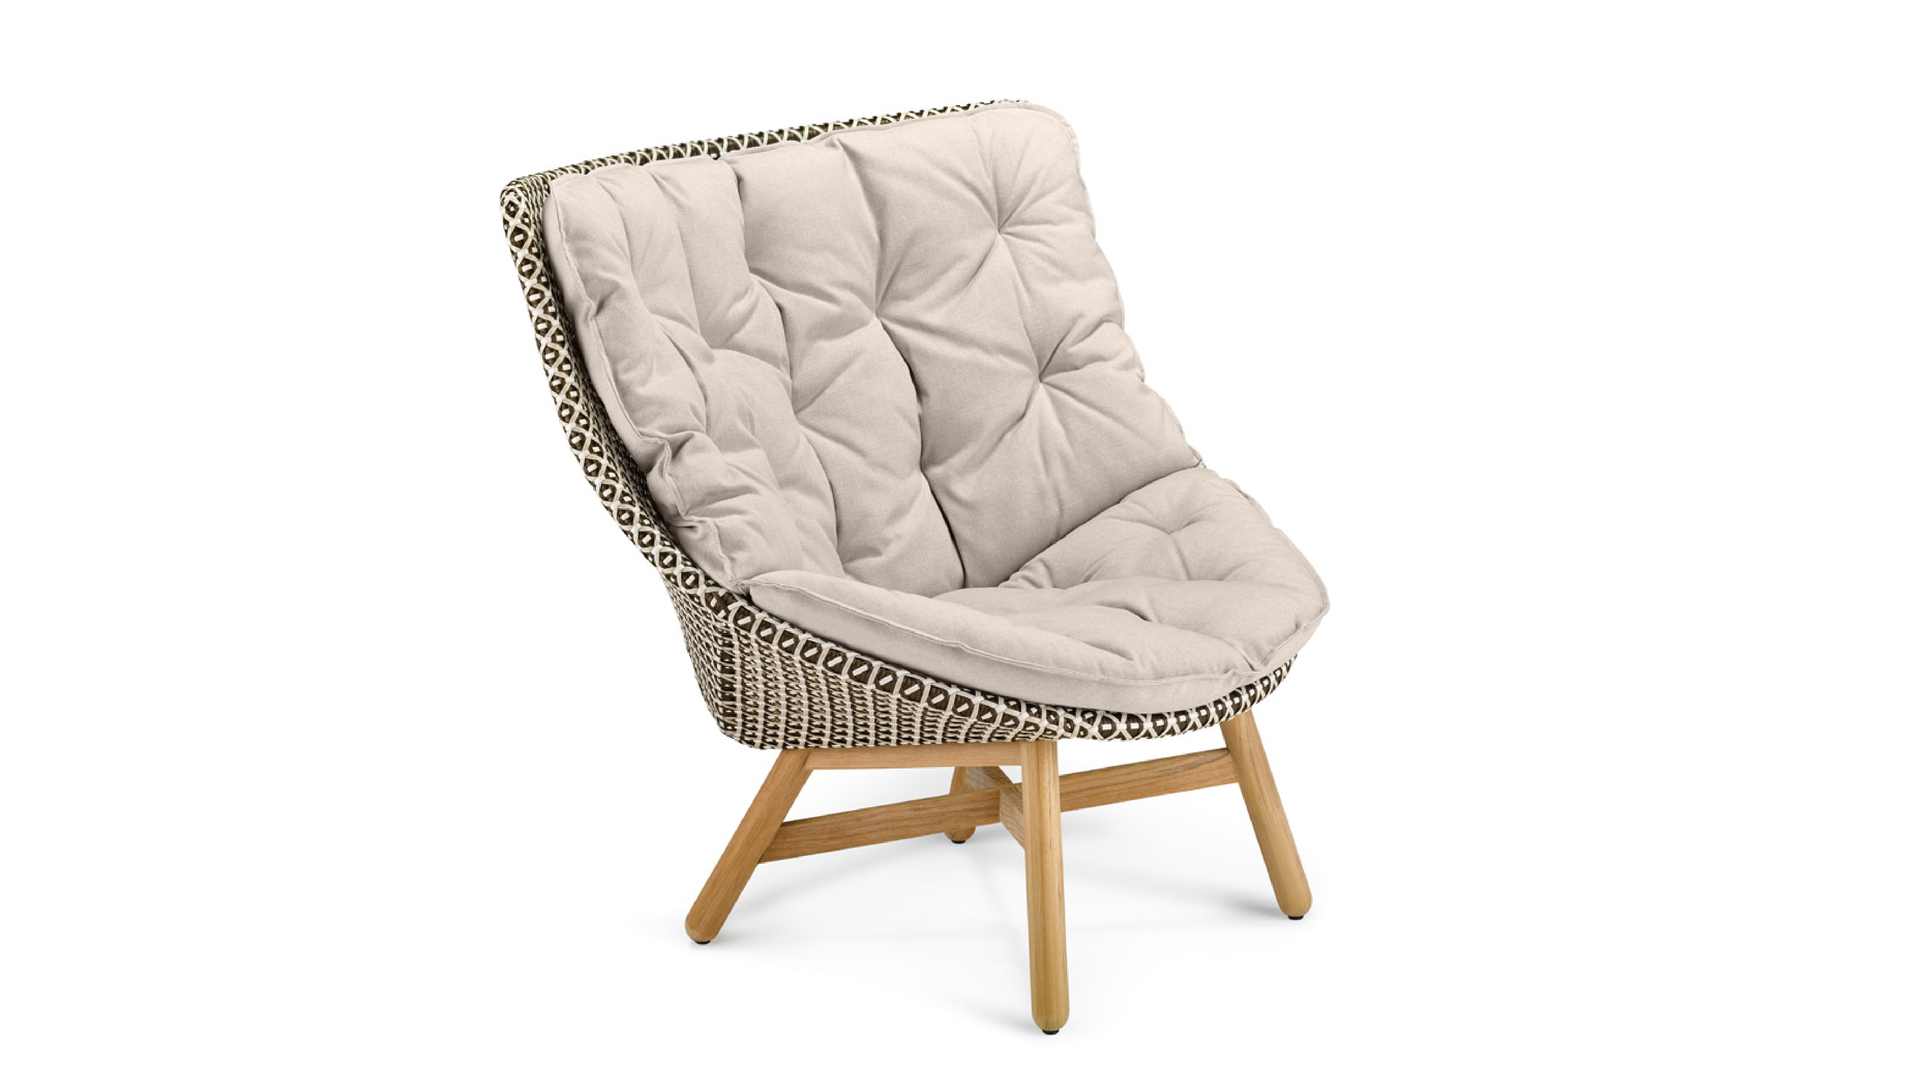 Mbrace wing chair.png